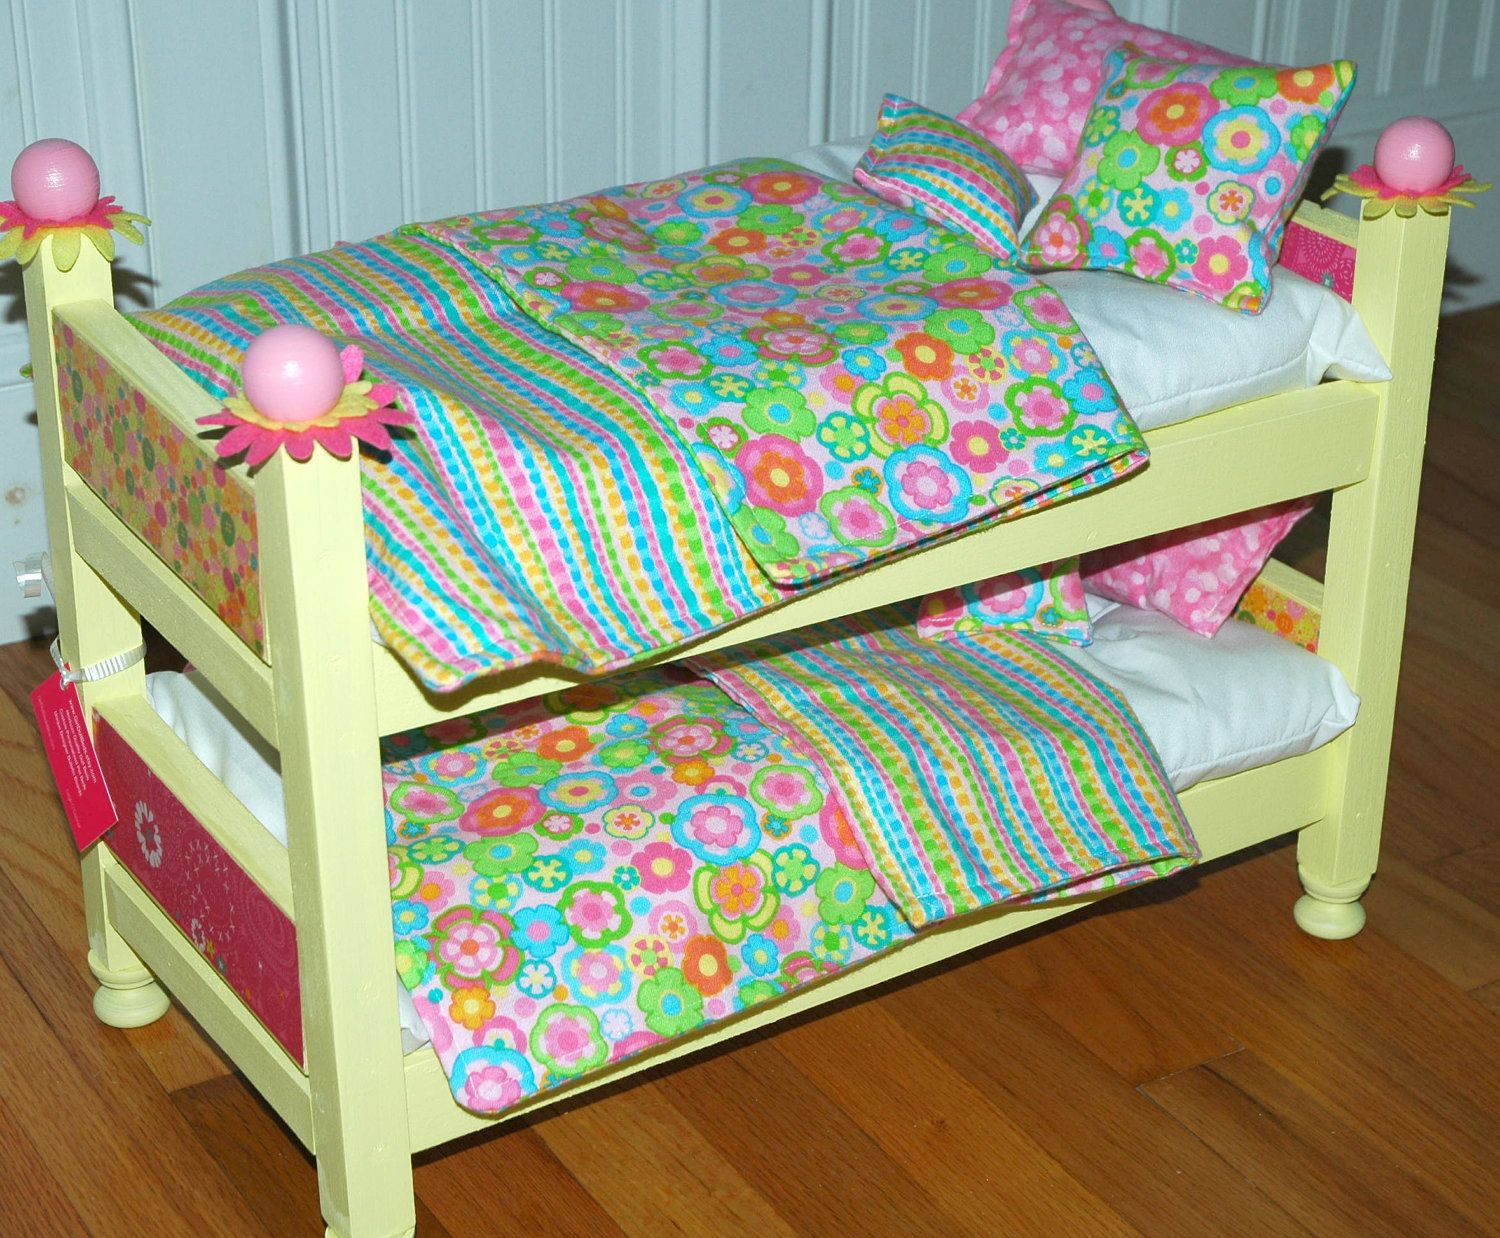 american girl doll bed - sunny yellow doll bunk bed - fits